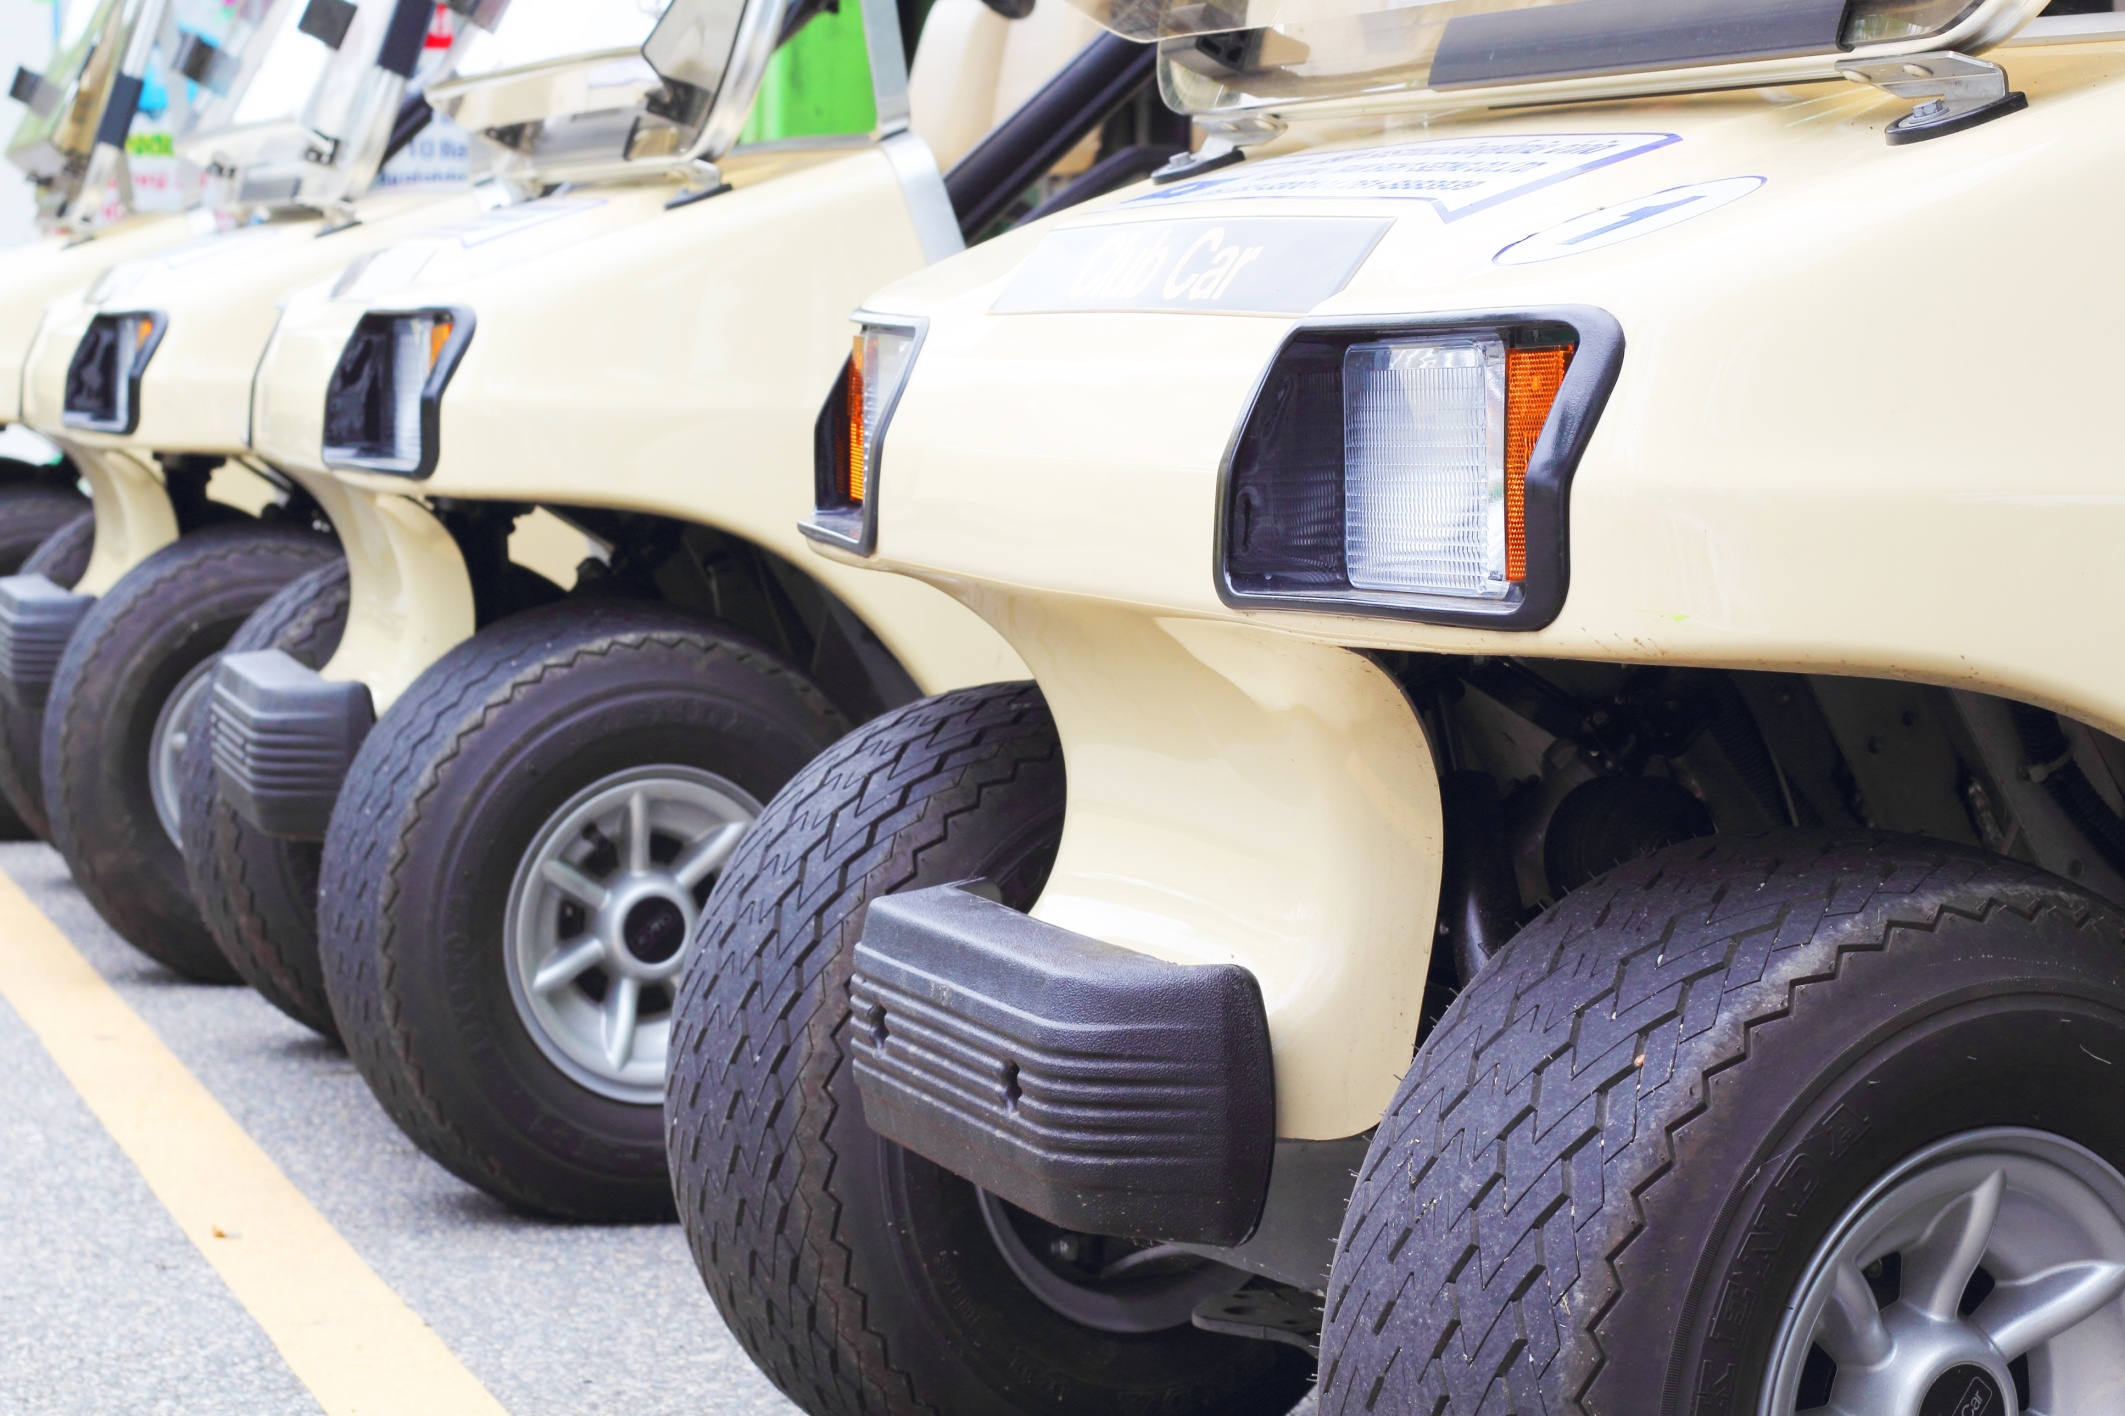 The Best Golf Cart Batteries Lithium Ion Vs Lead Acid